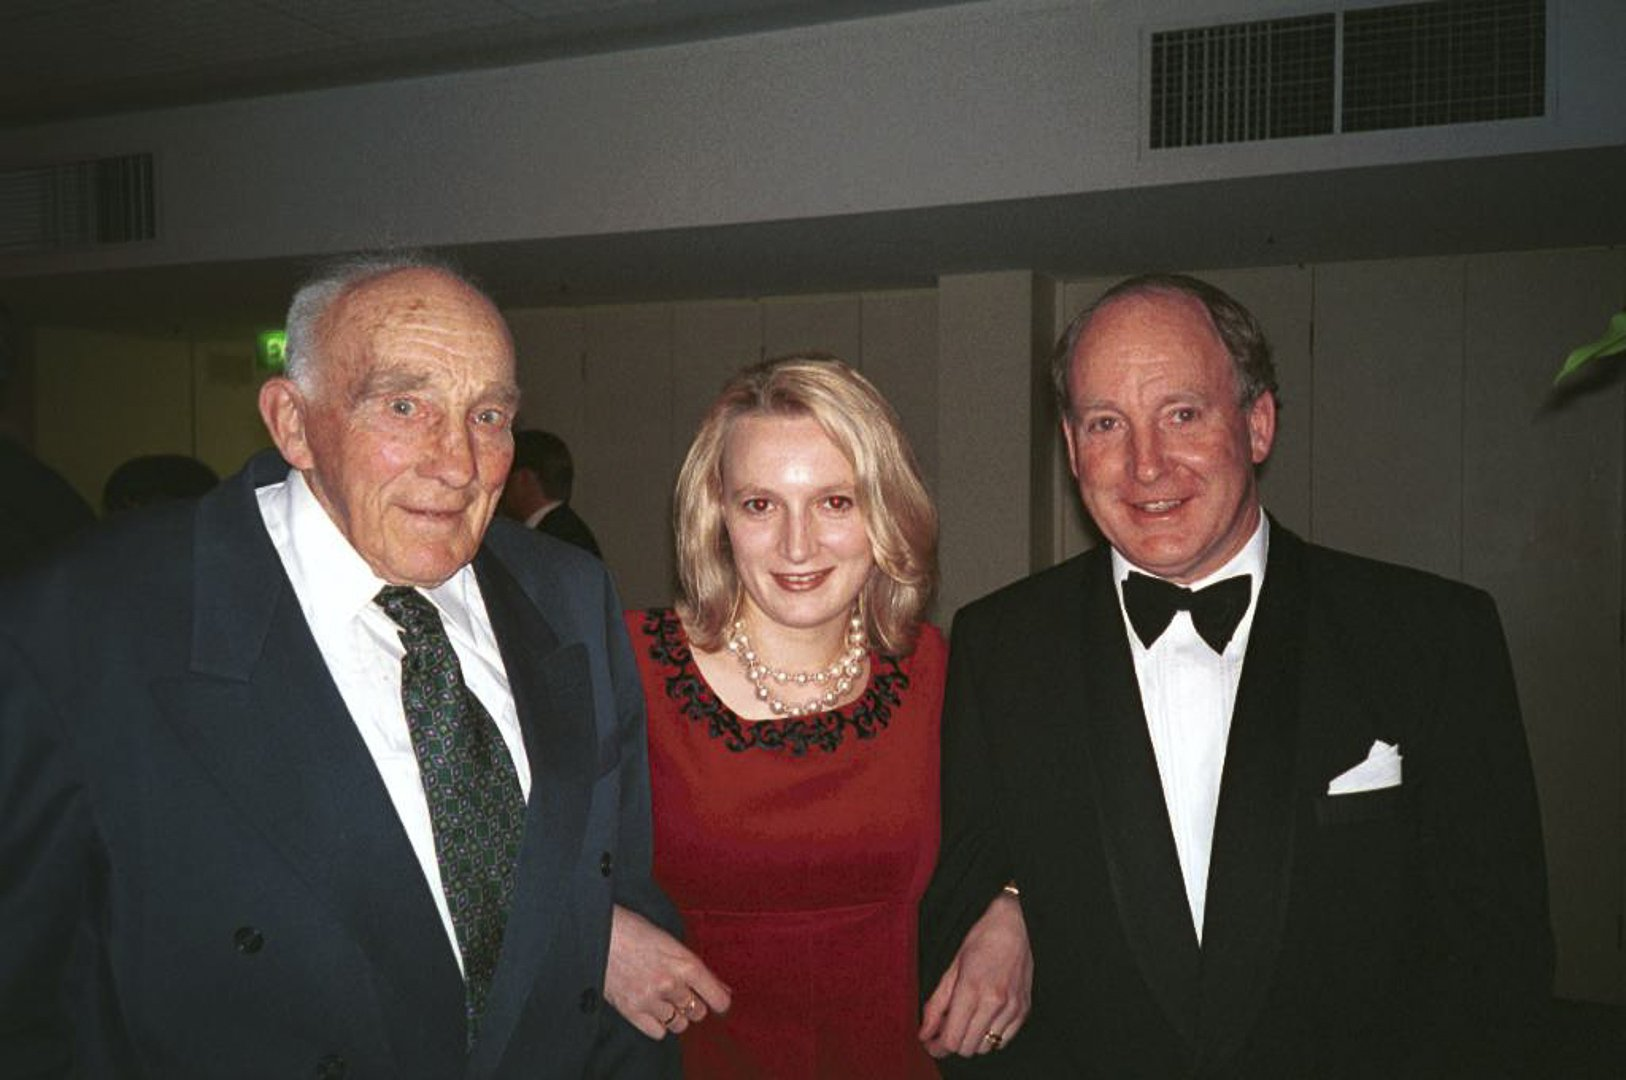 Pictured with his daughter Catherine and his father James Chester Draper in 1995